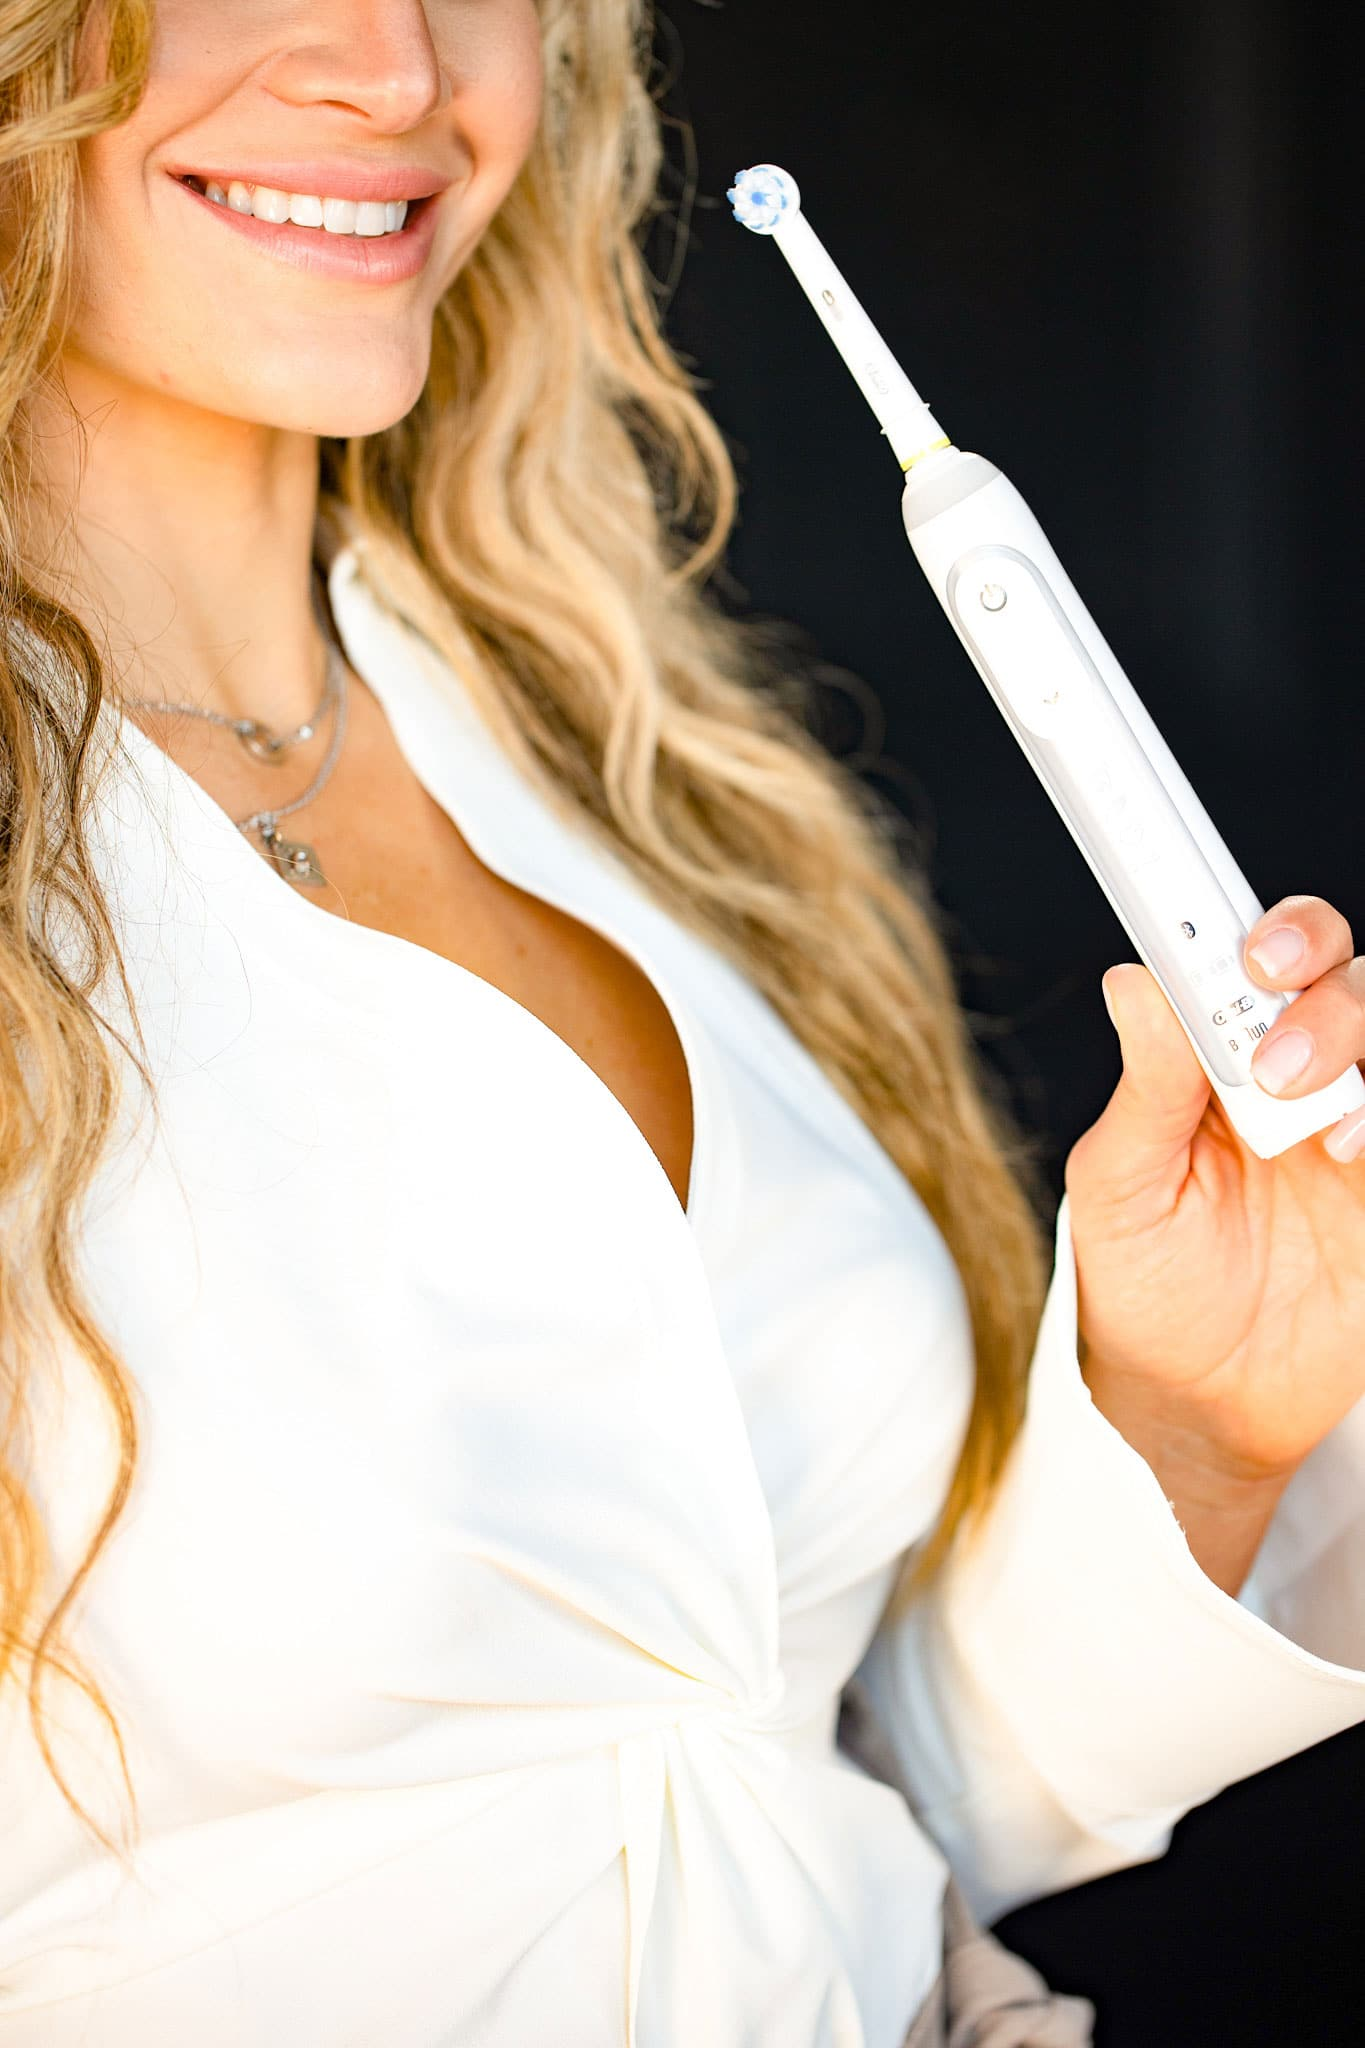 Dr. Jessica Tasios holding electric toothbrush